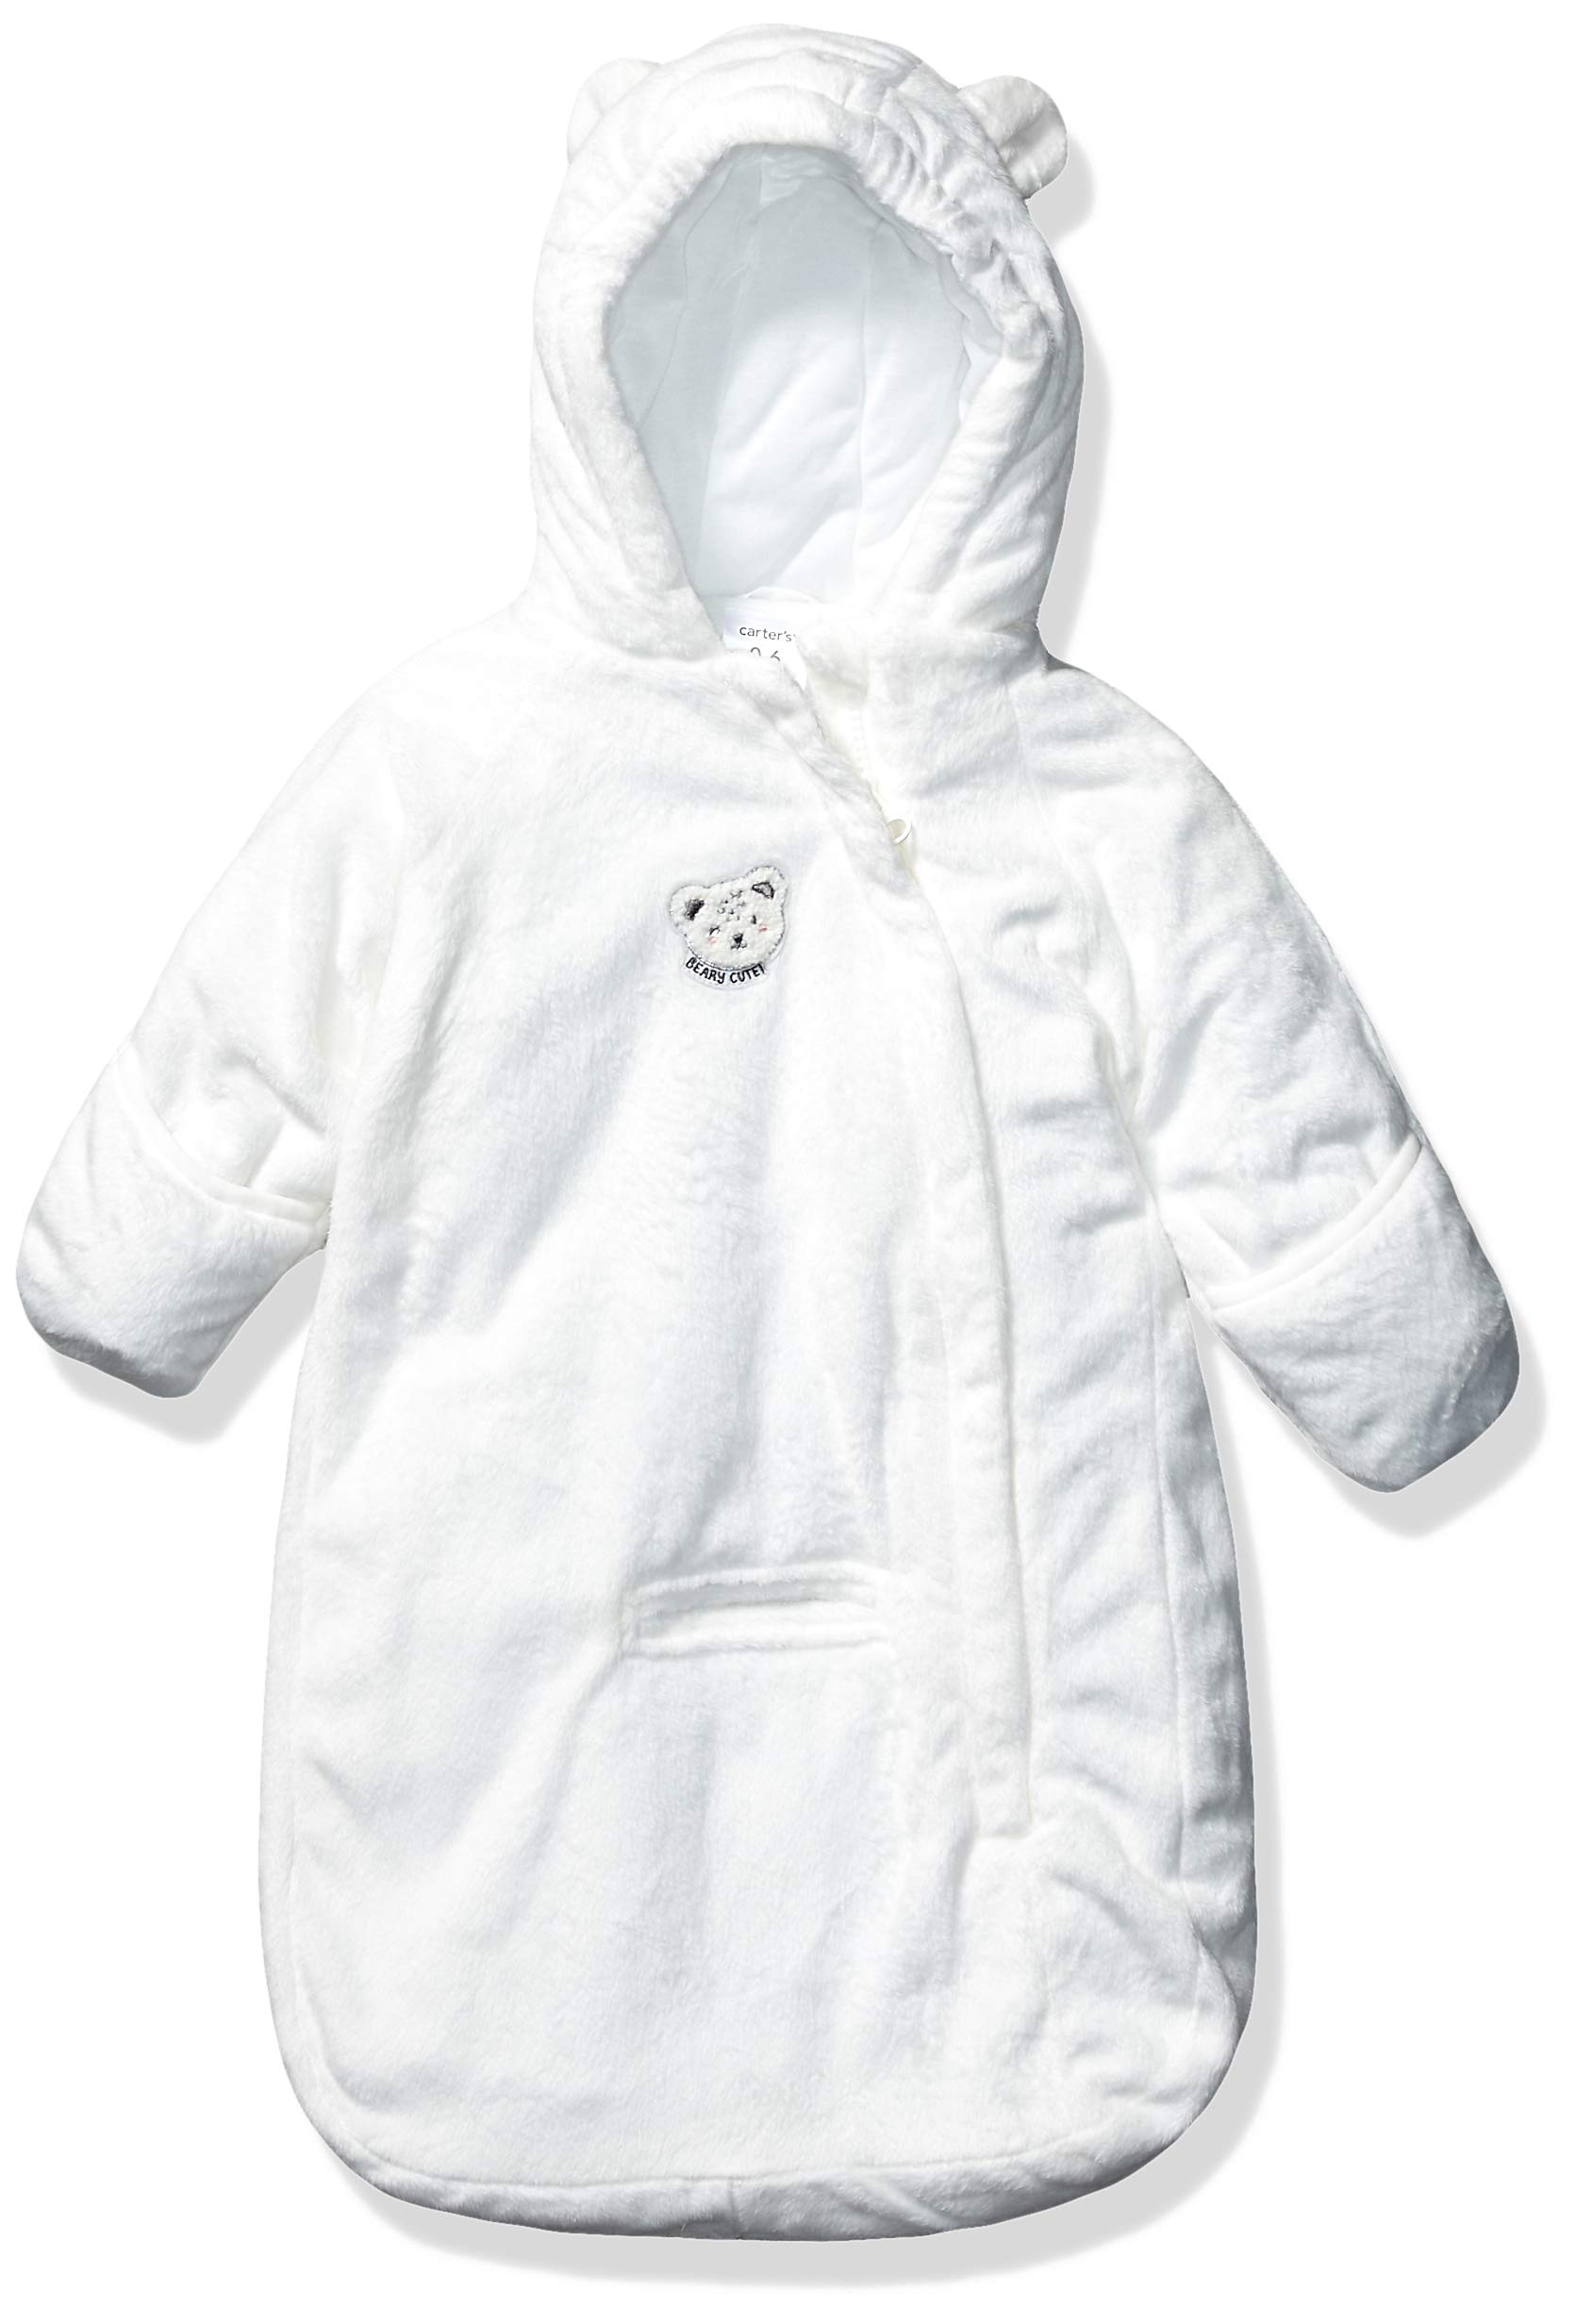 Carter's Baby Girls Bundle Up Cozy Pram with Ears, Ivory Bear Bag, 0/6 Months